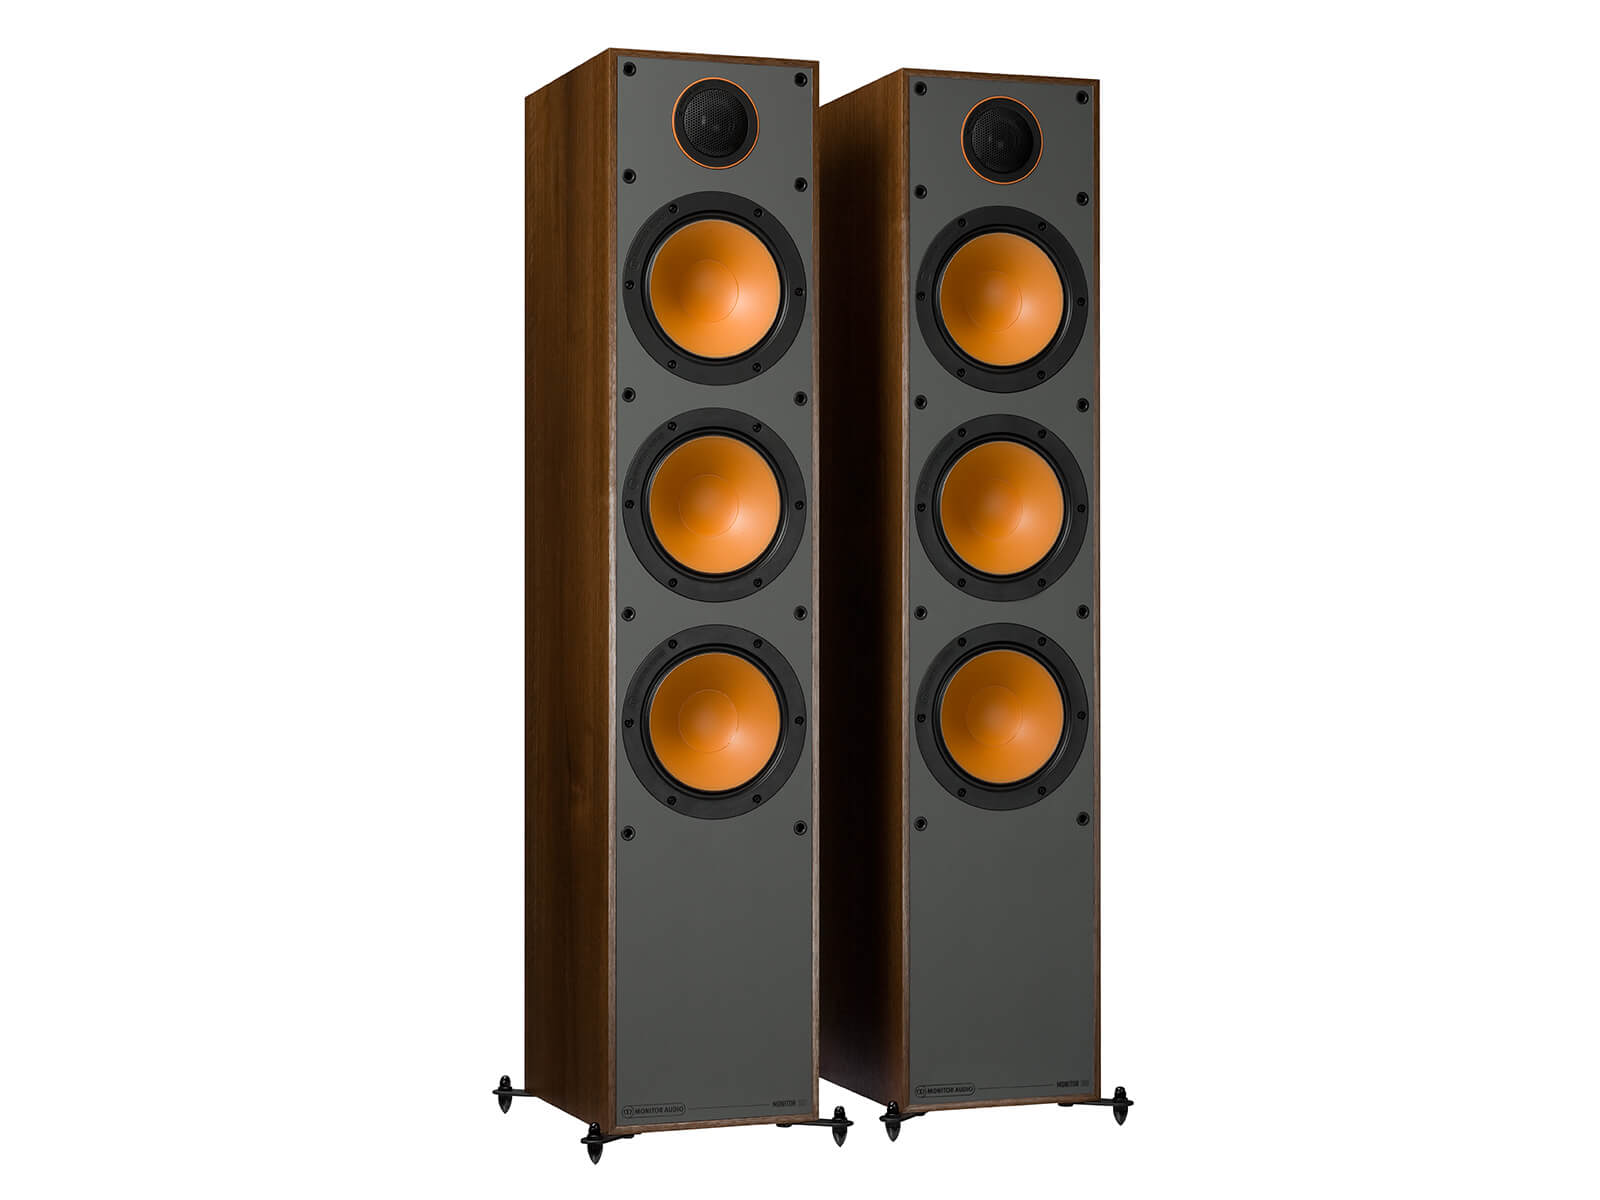 Monitor 300, floorstanding speakers, without grilles in a walnut vinyl finish.